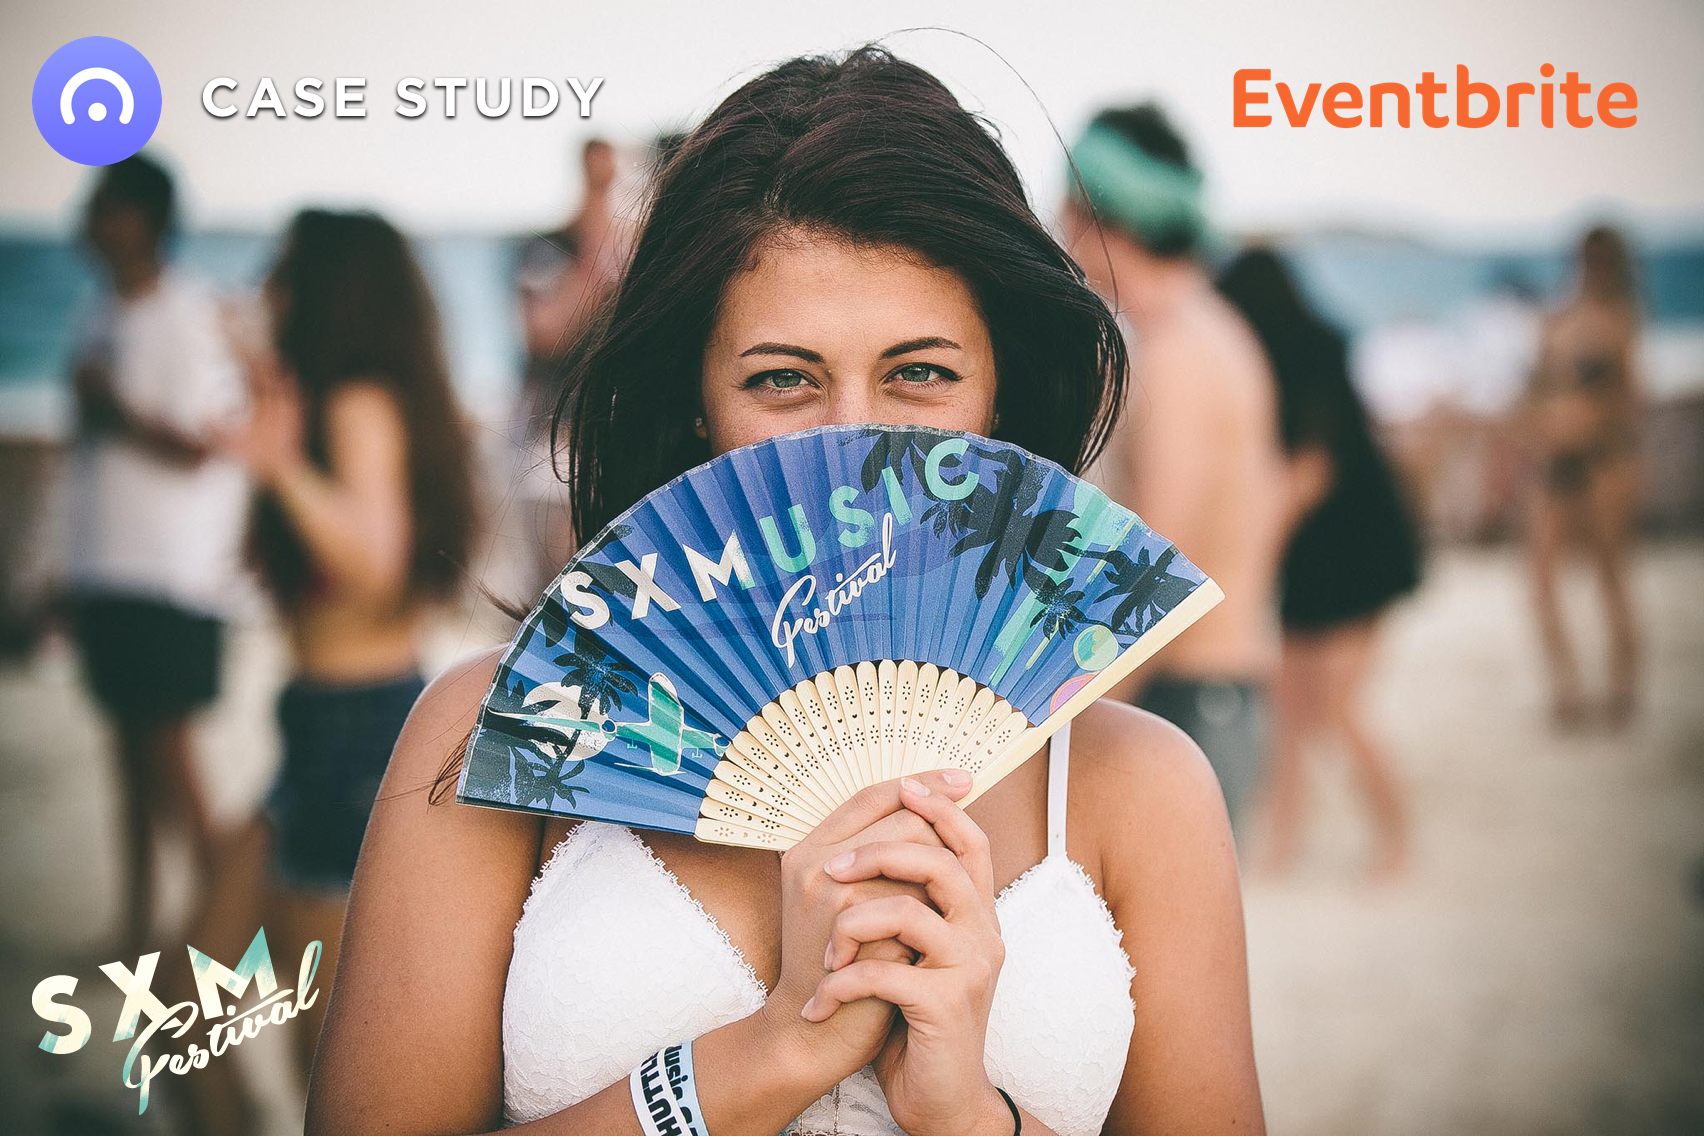 How to Use Facebook Ads to Sell More Eventbrite Tickets